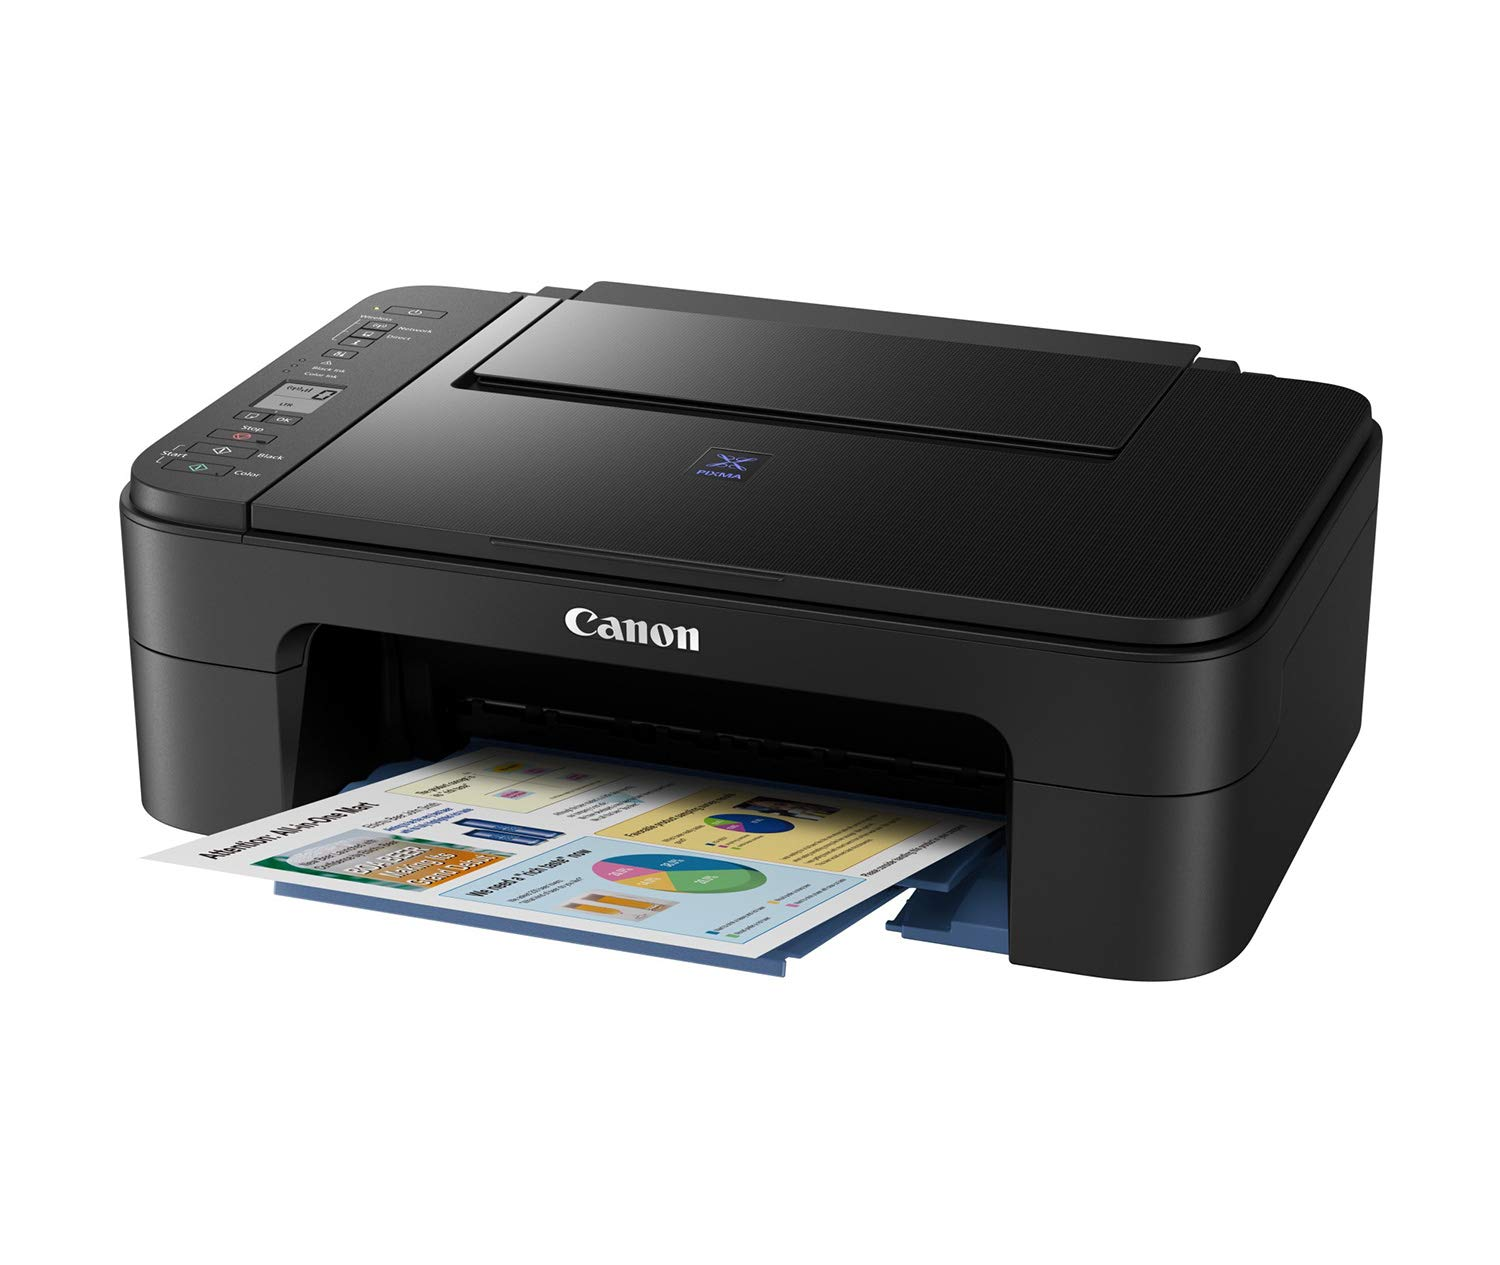 Tell me, please, the inkjet color printer Sanon pixma mg 5740, for home use, someone took